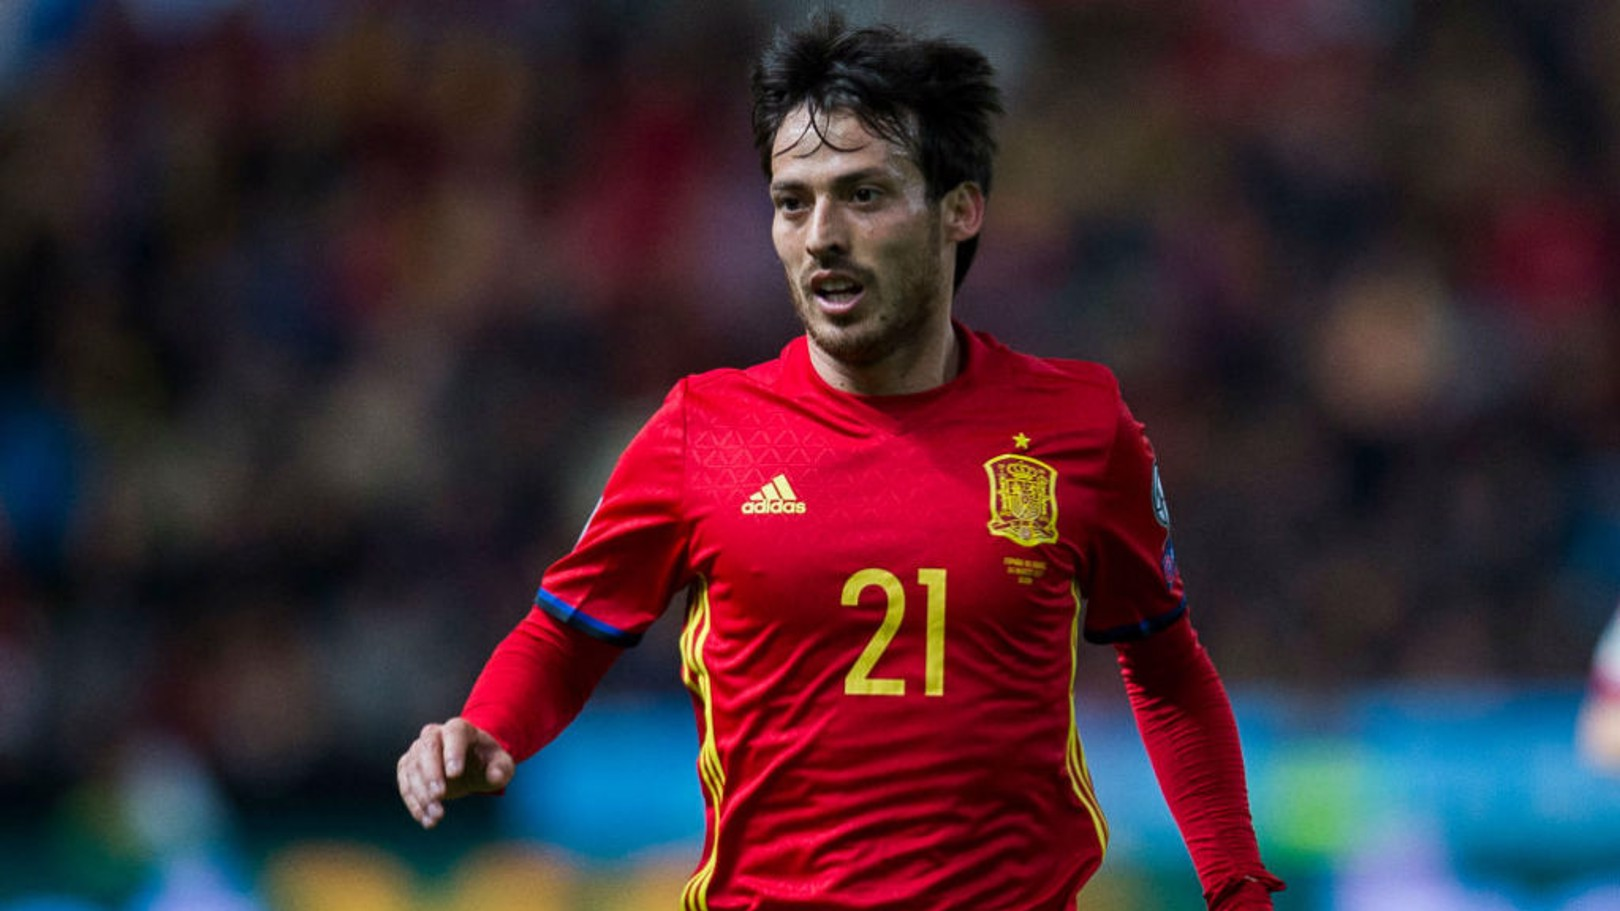 DOUBLE: Silva scored another two for Spain